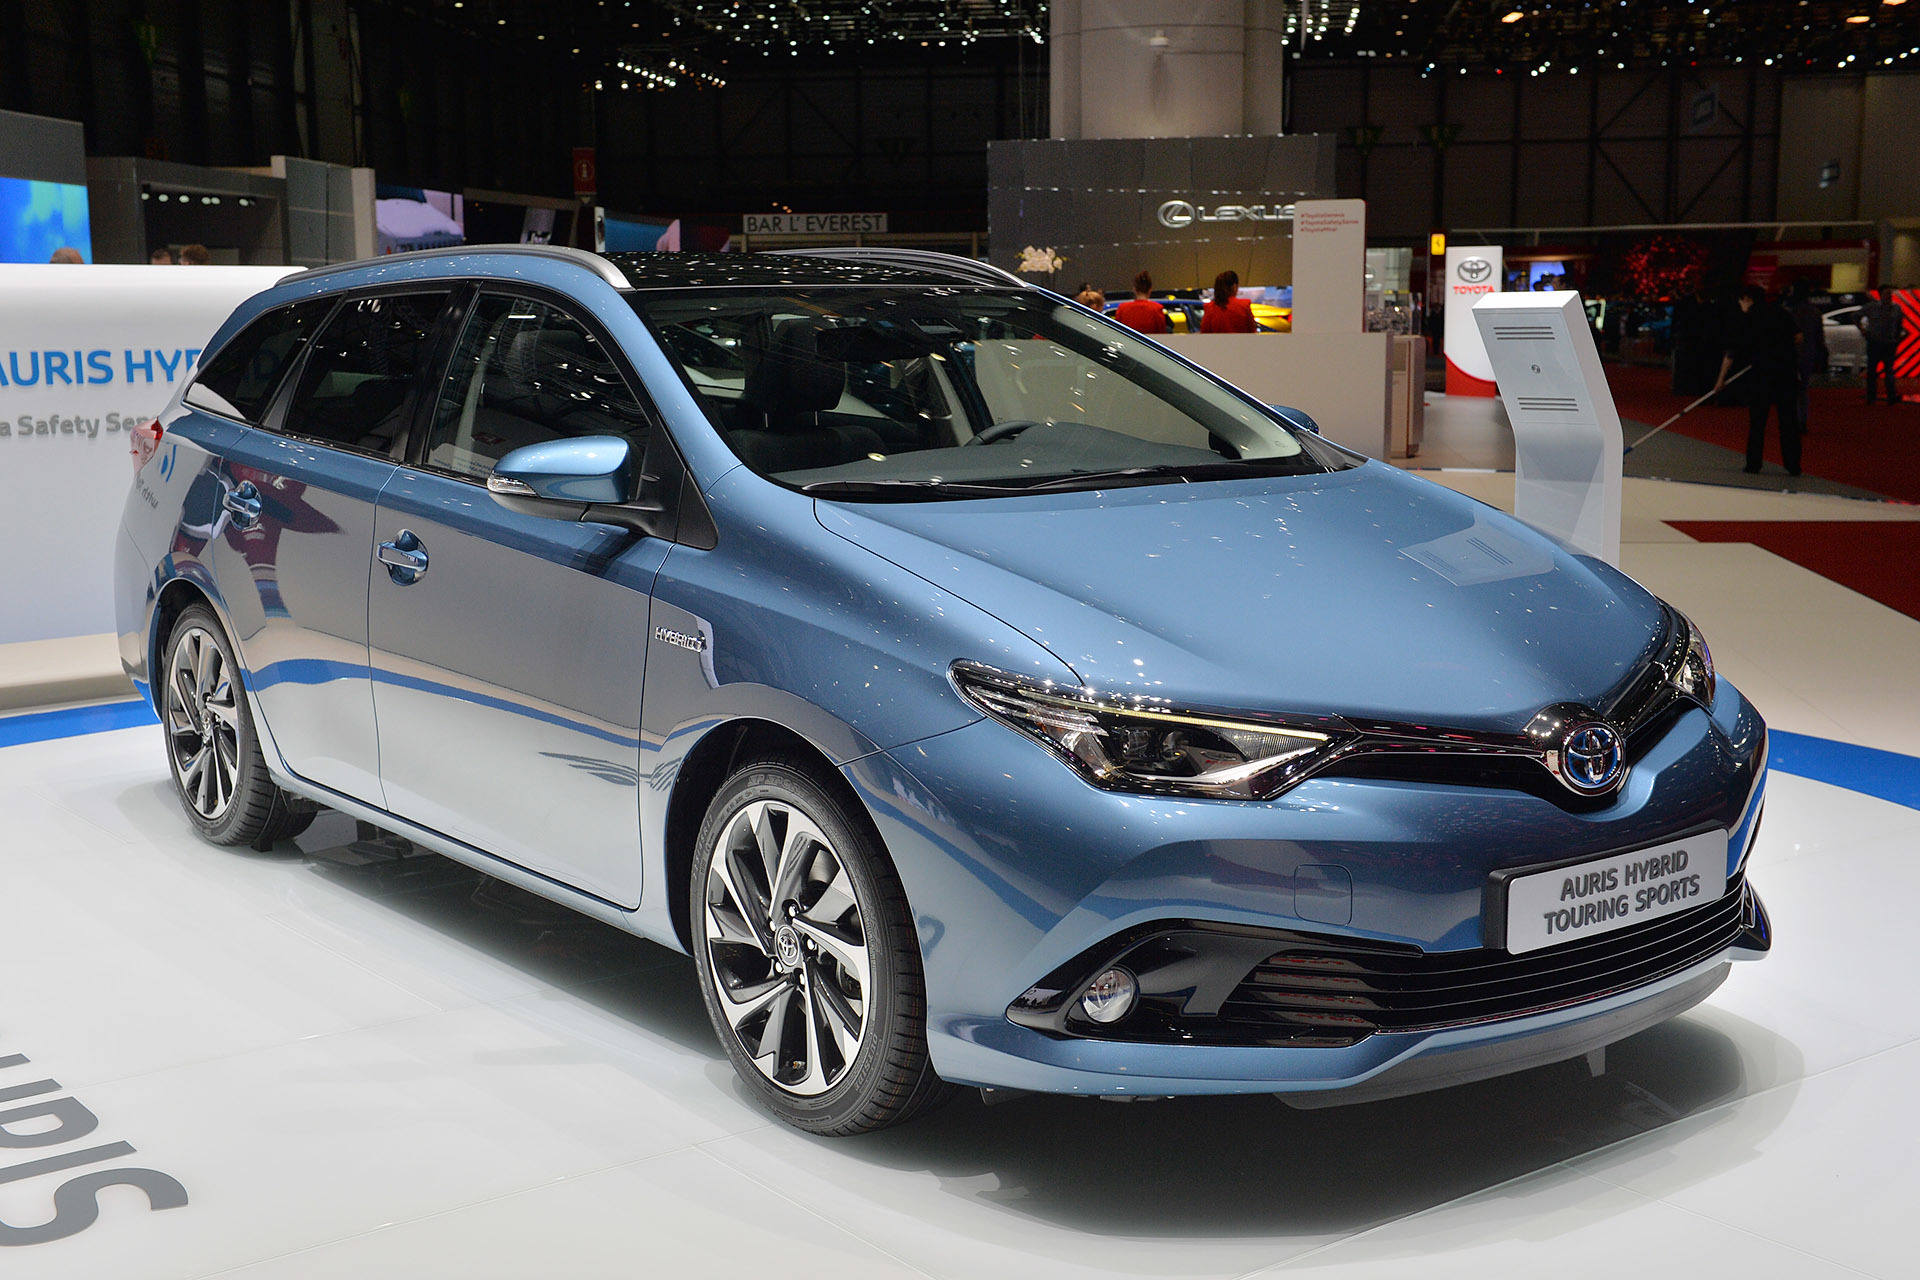 2015 Toyota Auris Hybrid: Geneva 2015 Photo Gallery - Autoblog